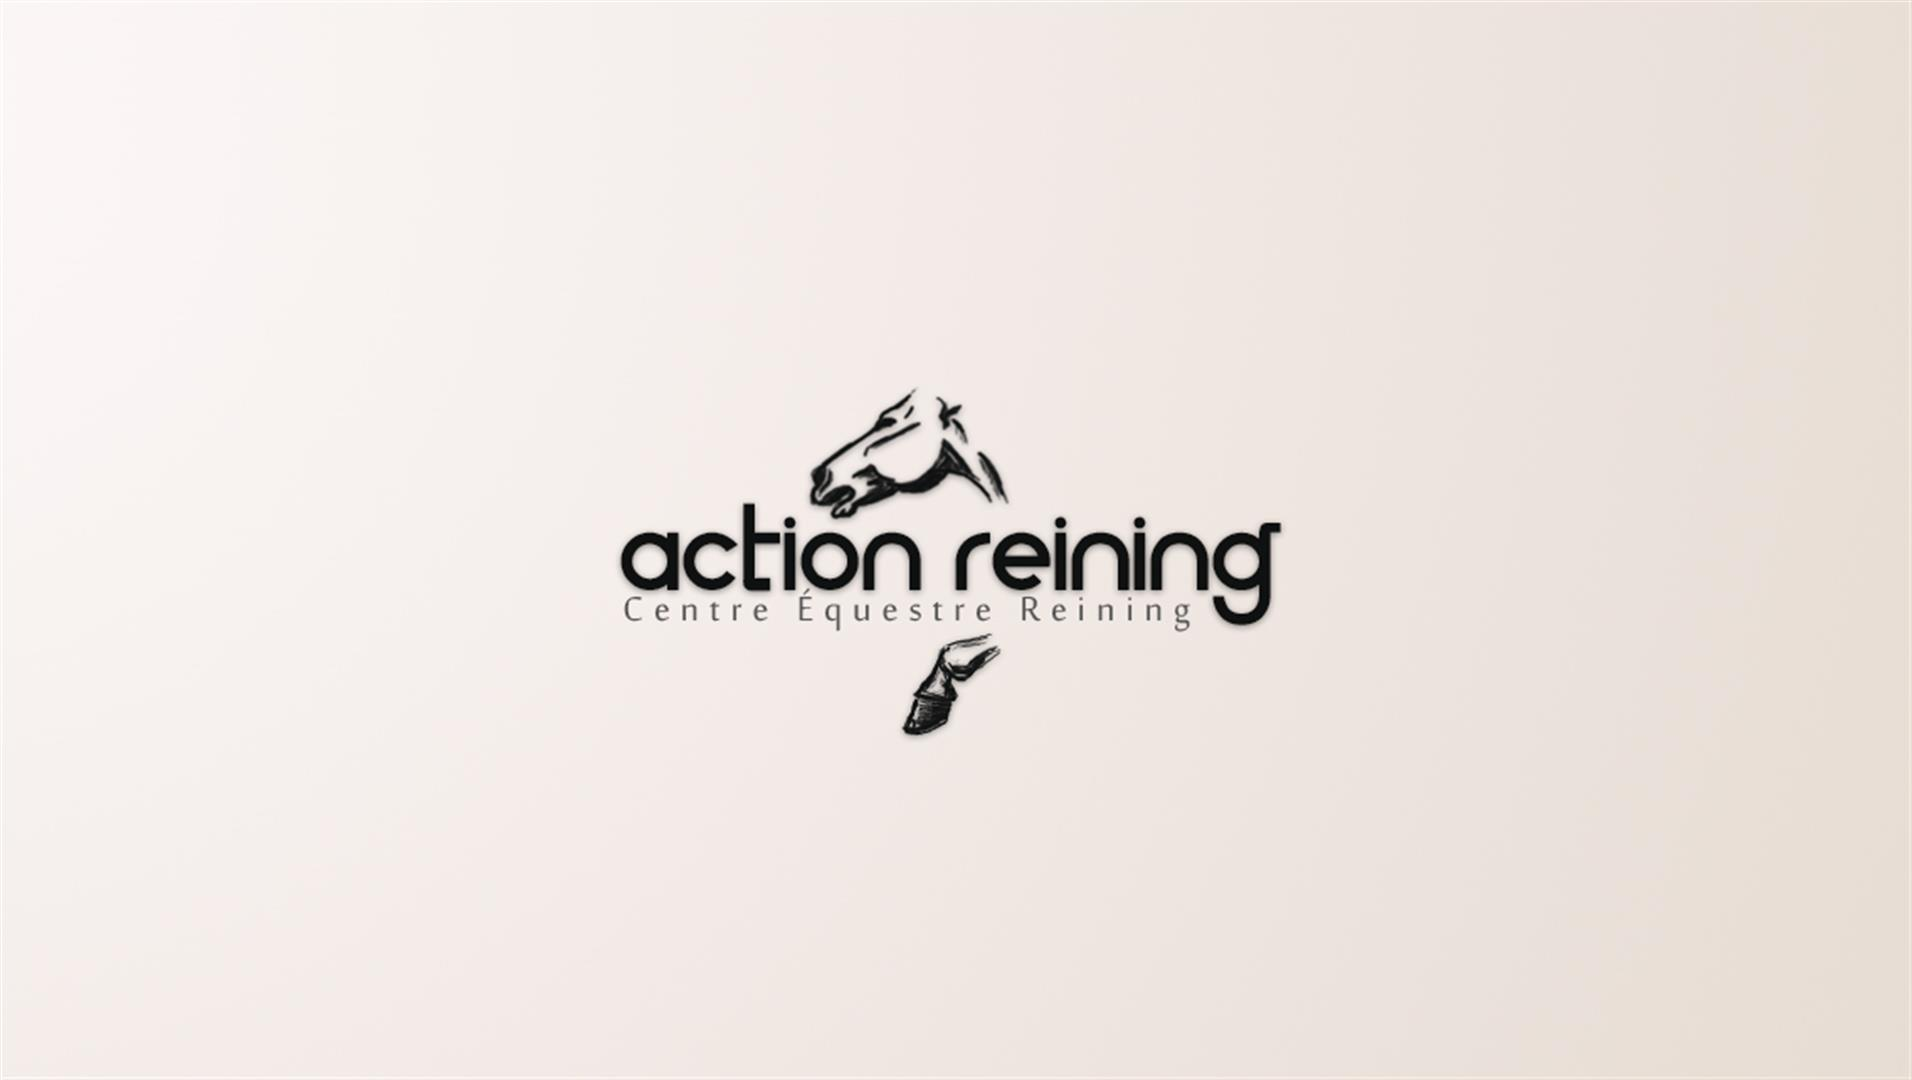 4 action reining logotype creation logo